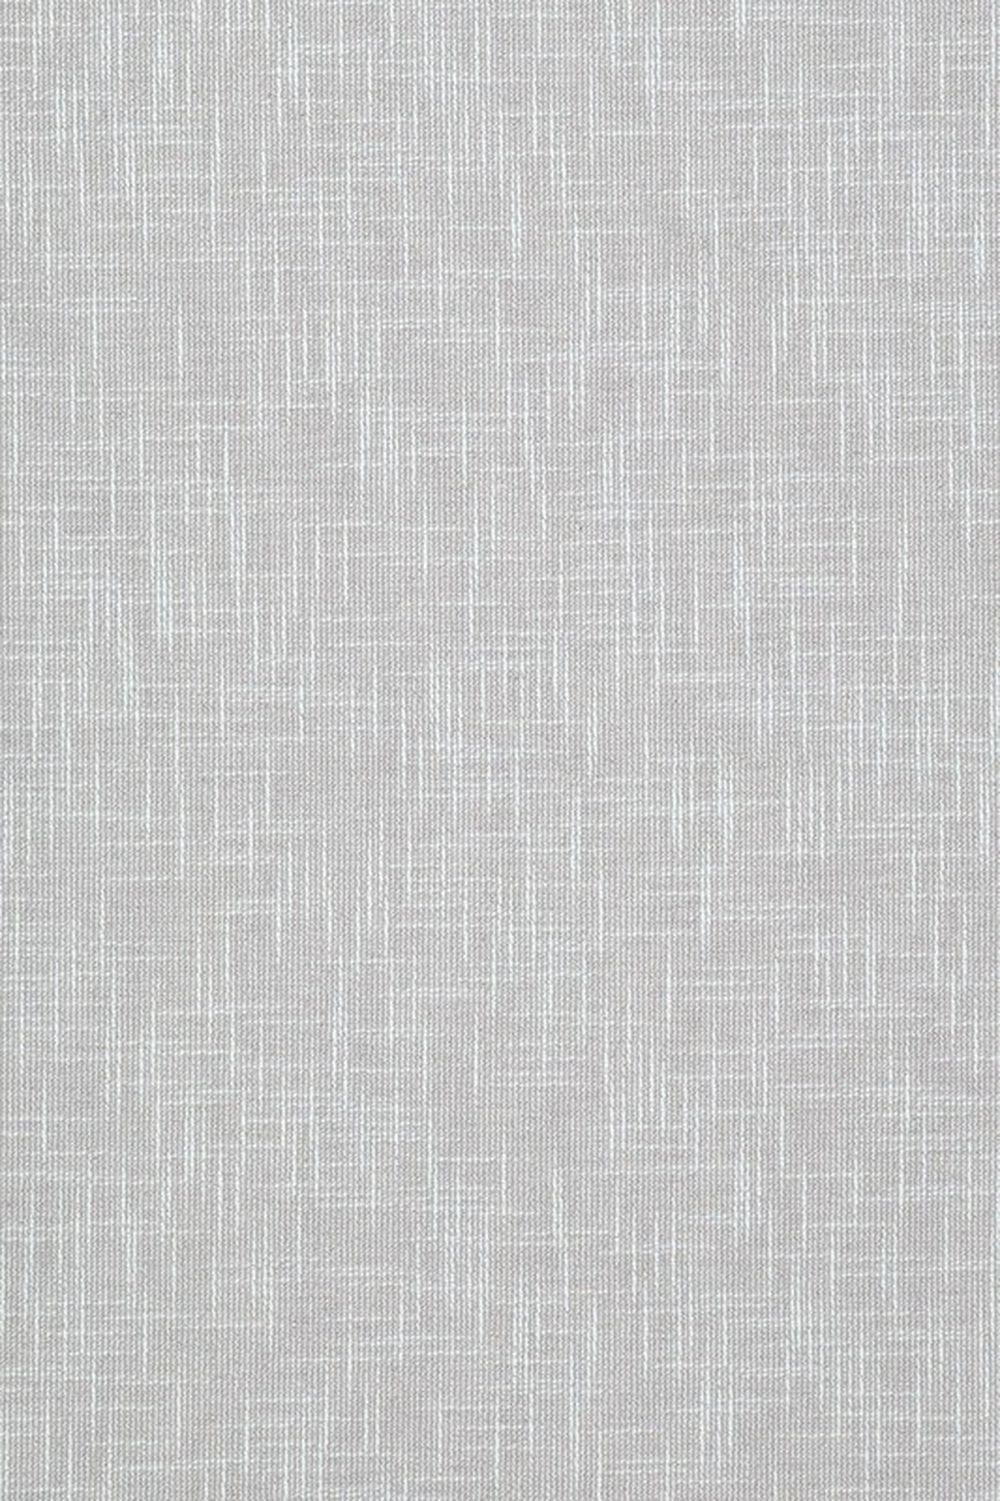 Photo of the fabric Miso * Silver Haze swatch by Pegasus. Use for Curtains, Accessory. Style of Plain, Texture